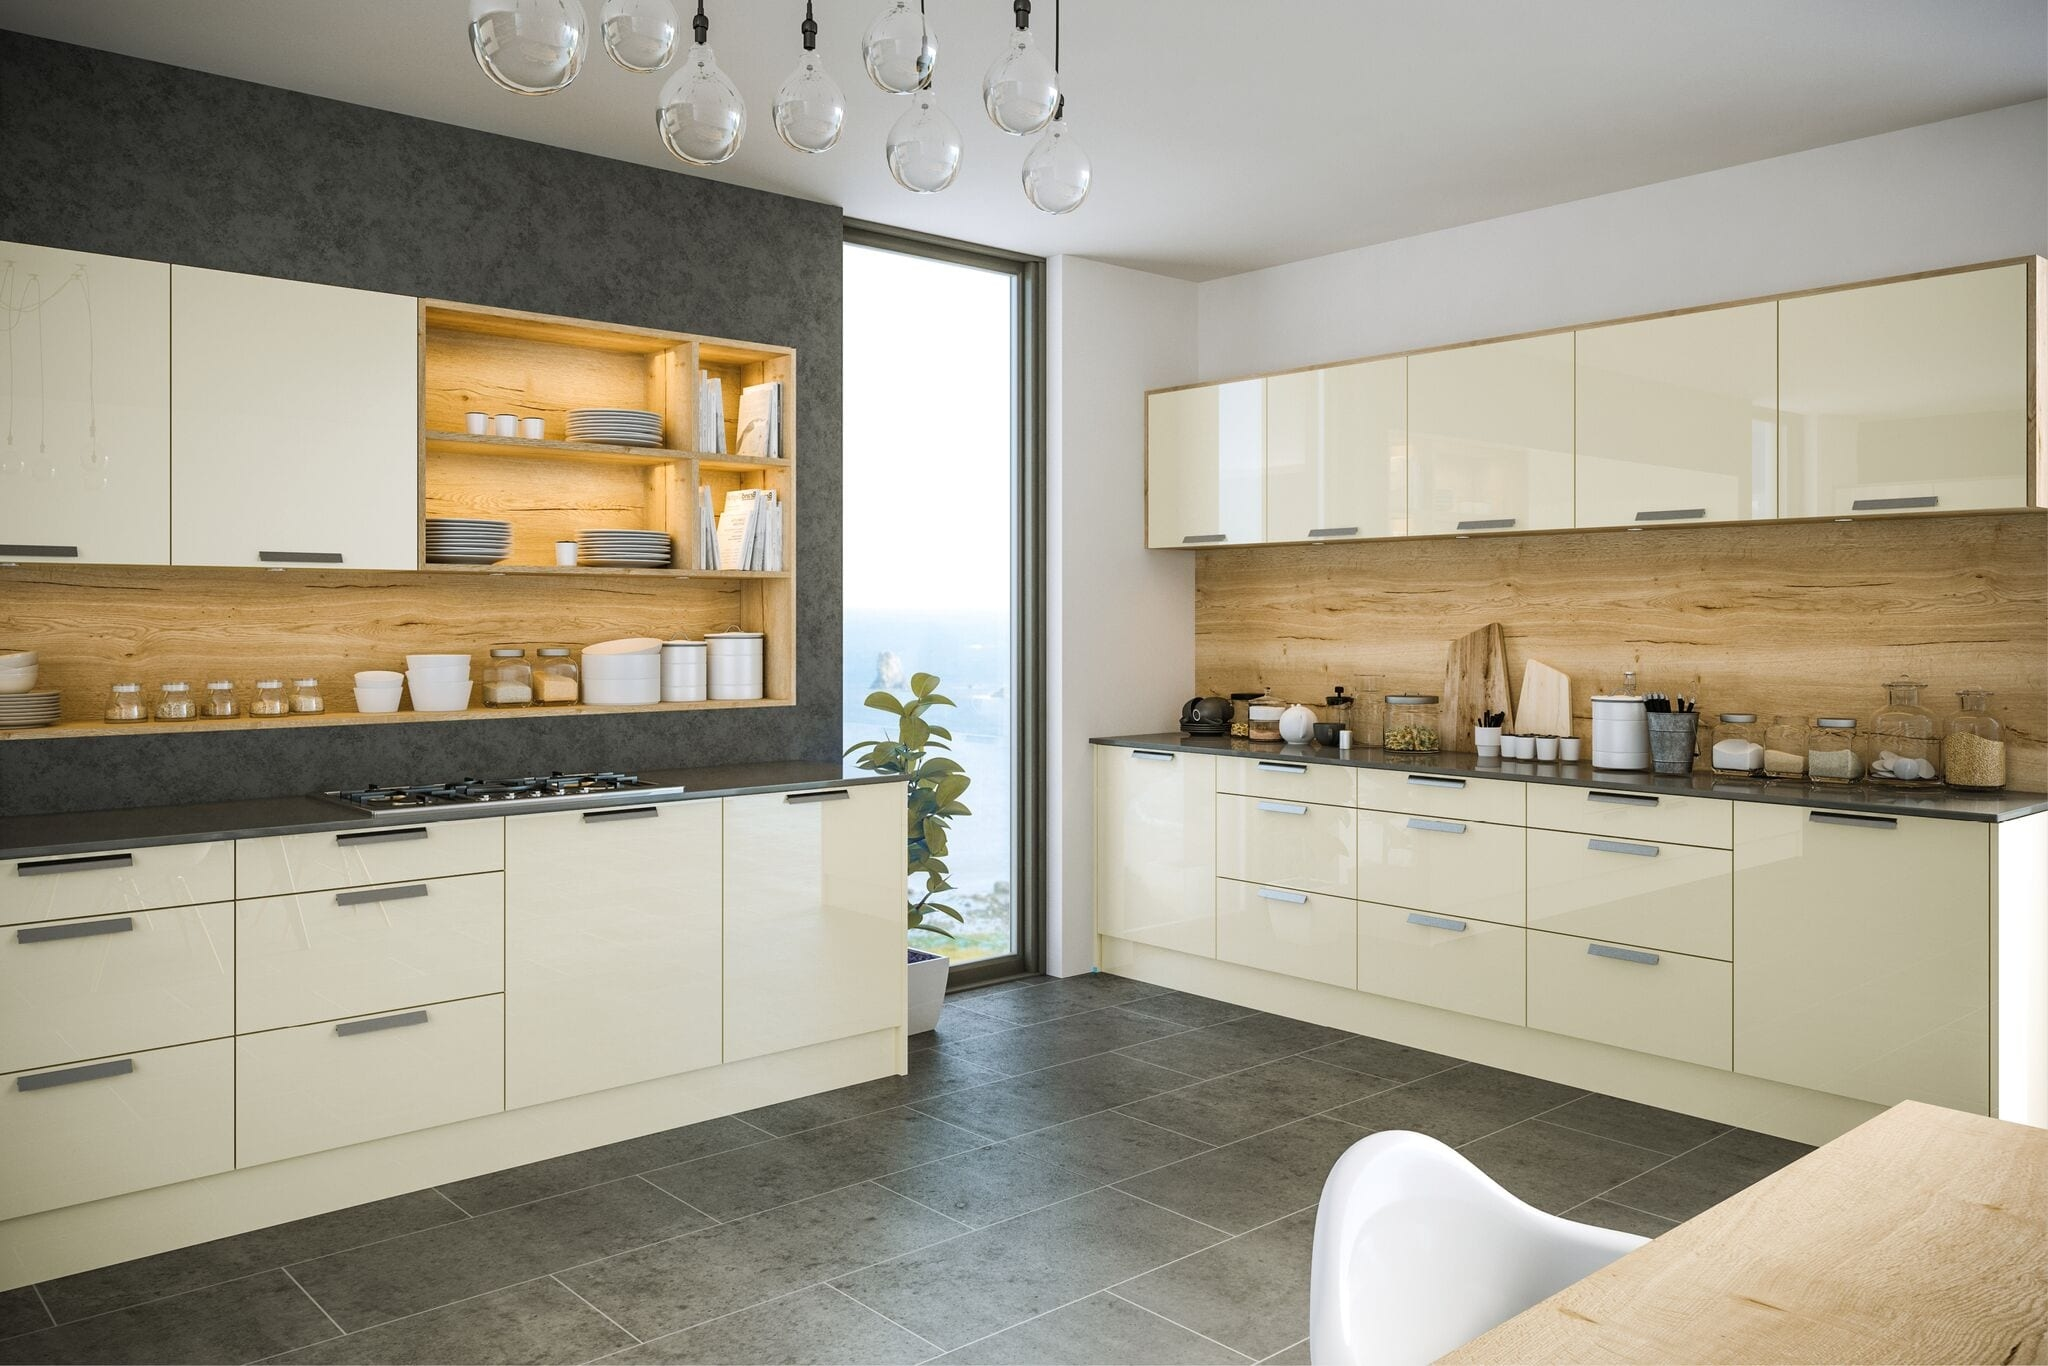 Firbeck kitchen in light grey and white